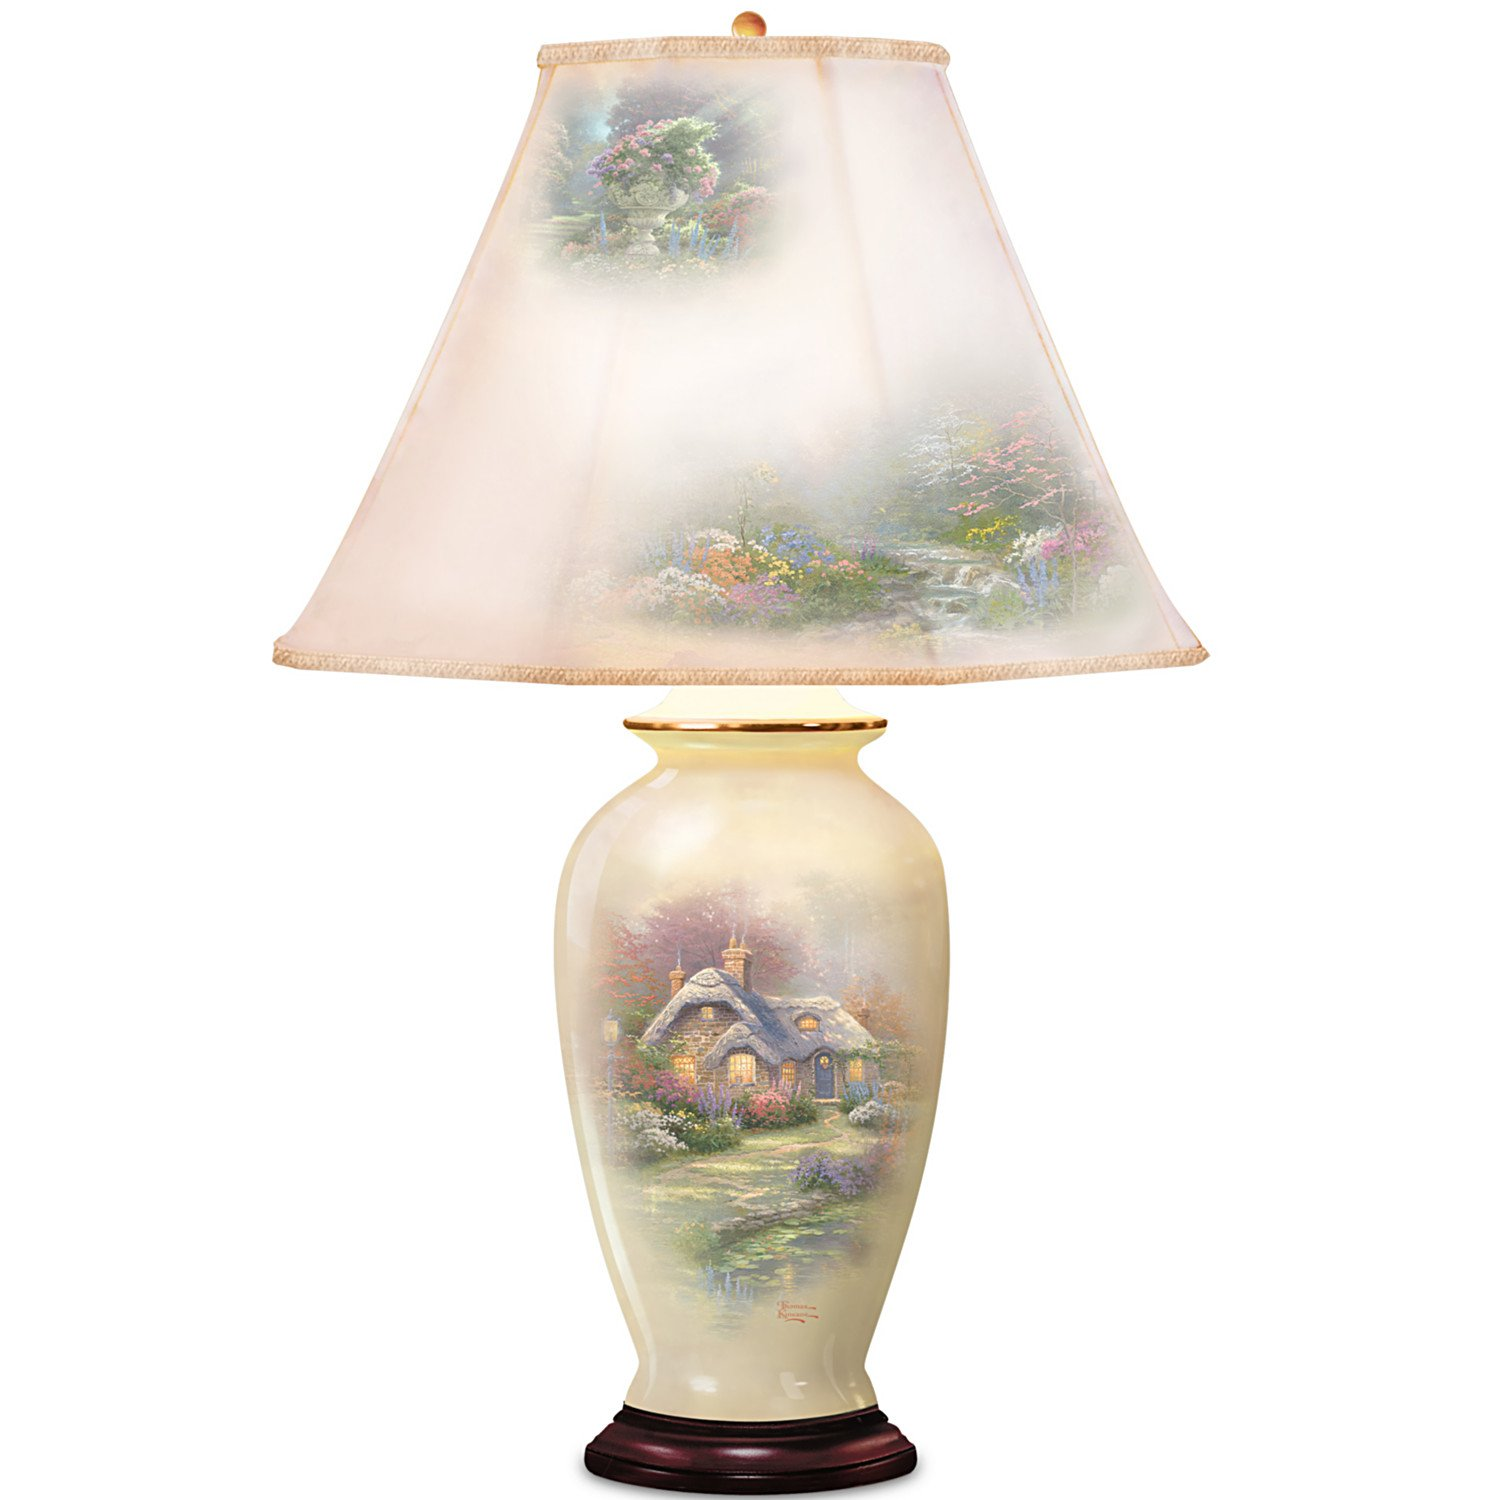 Thomas kinkade everetts cottage charm porcelain ginger jar table thomas kinkade everetts cottage charm porcelain ginger jar table lamp by the bradford exchange amazon geotapseo Gallery